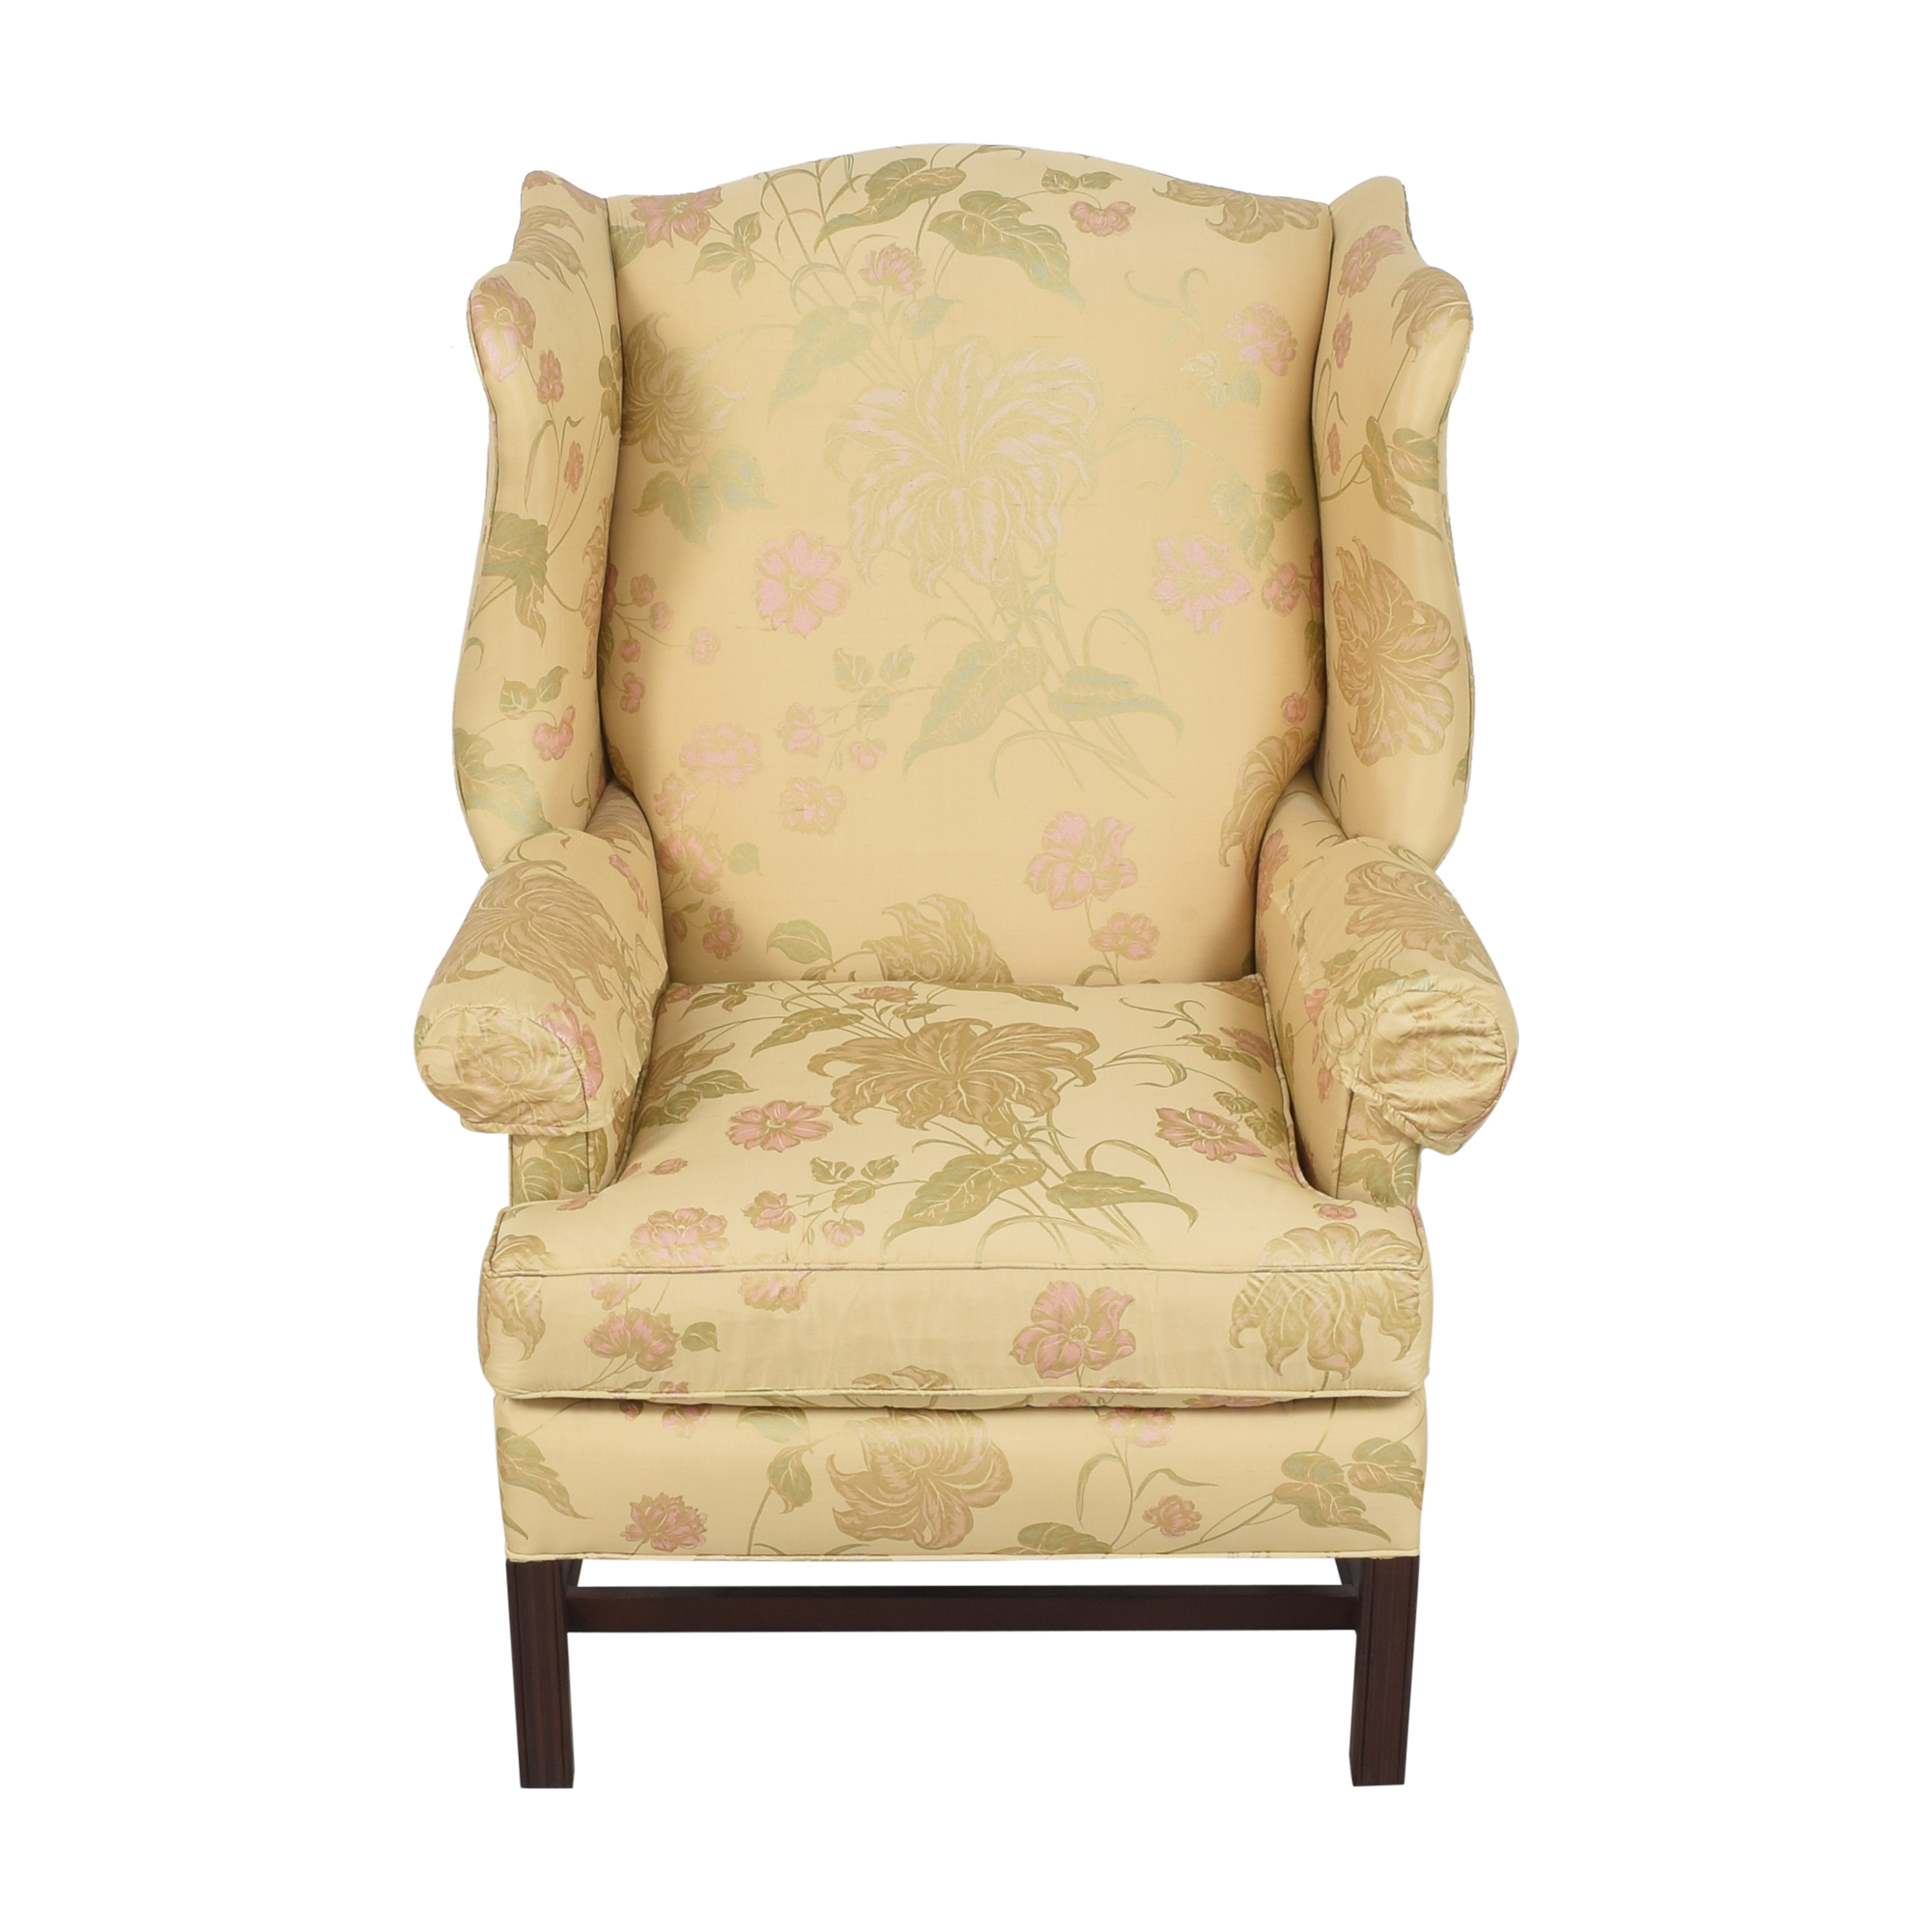 shop CR Laine CR Laine Upholstered Accent Chair online